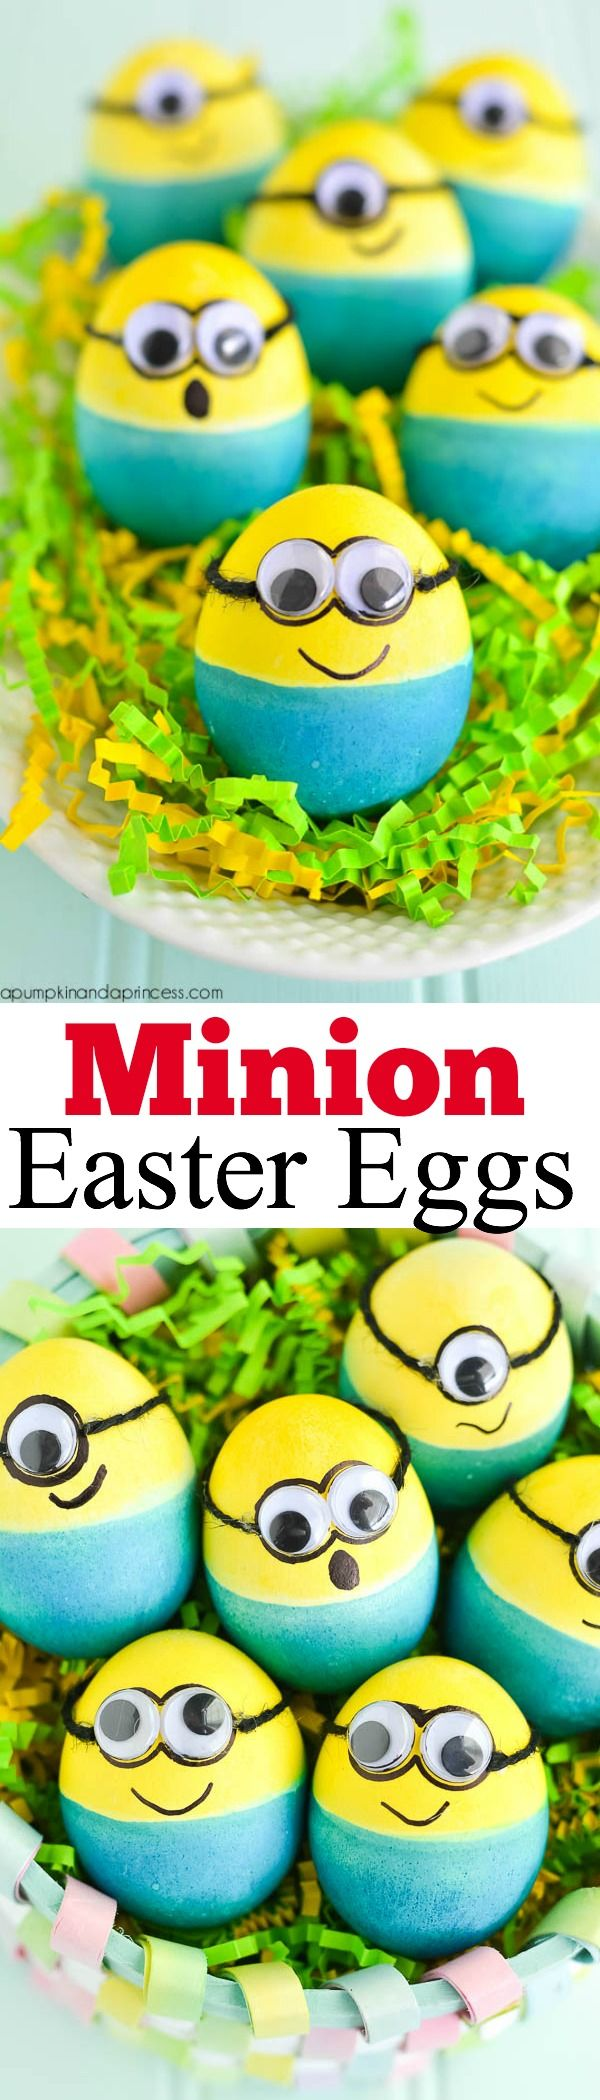 Dyed-Minion-Easter-Eggs1.jpg 600×2100 pikseli